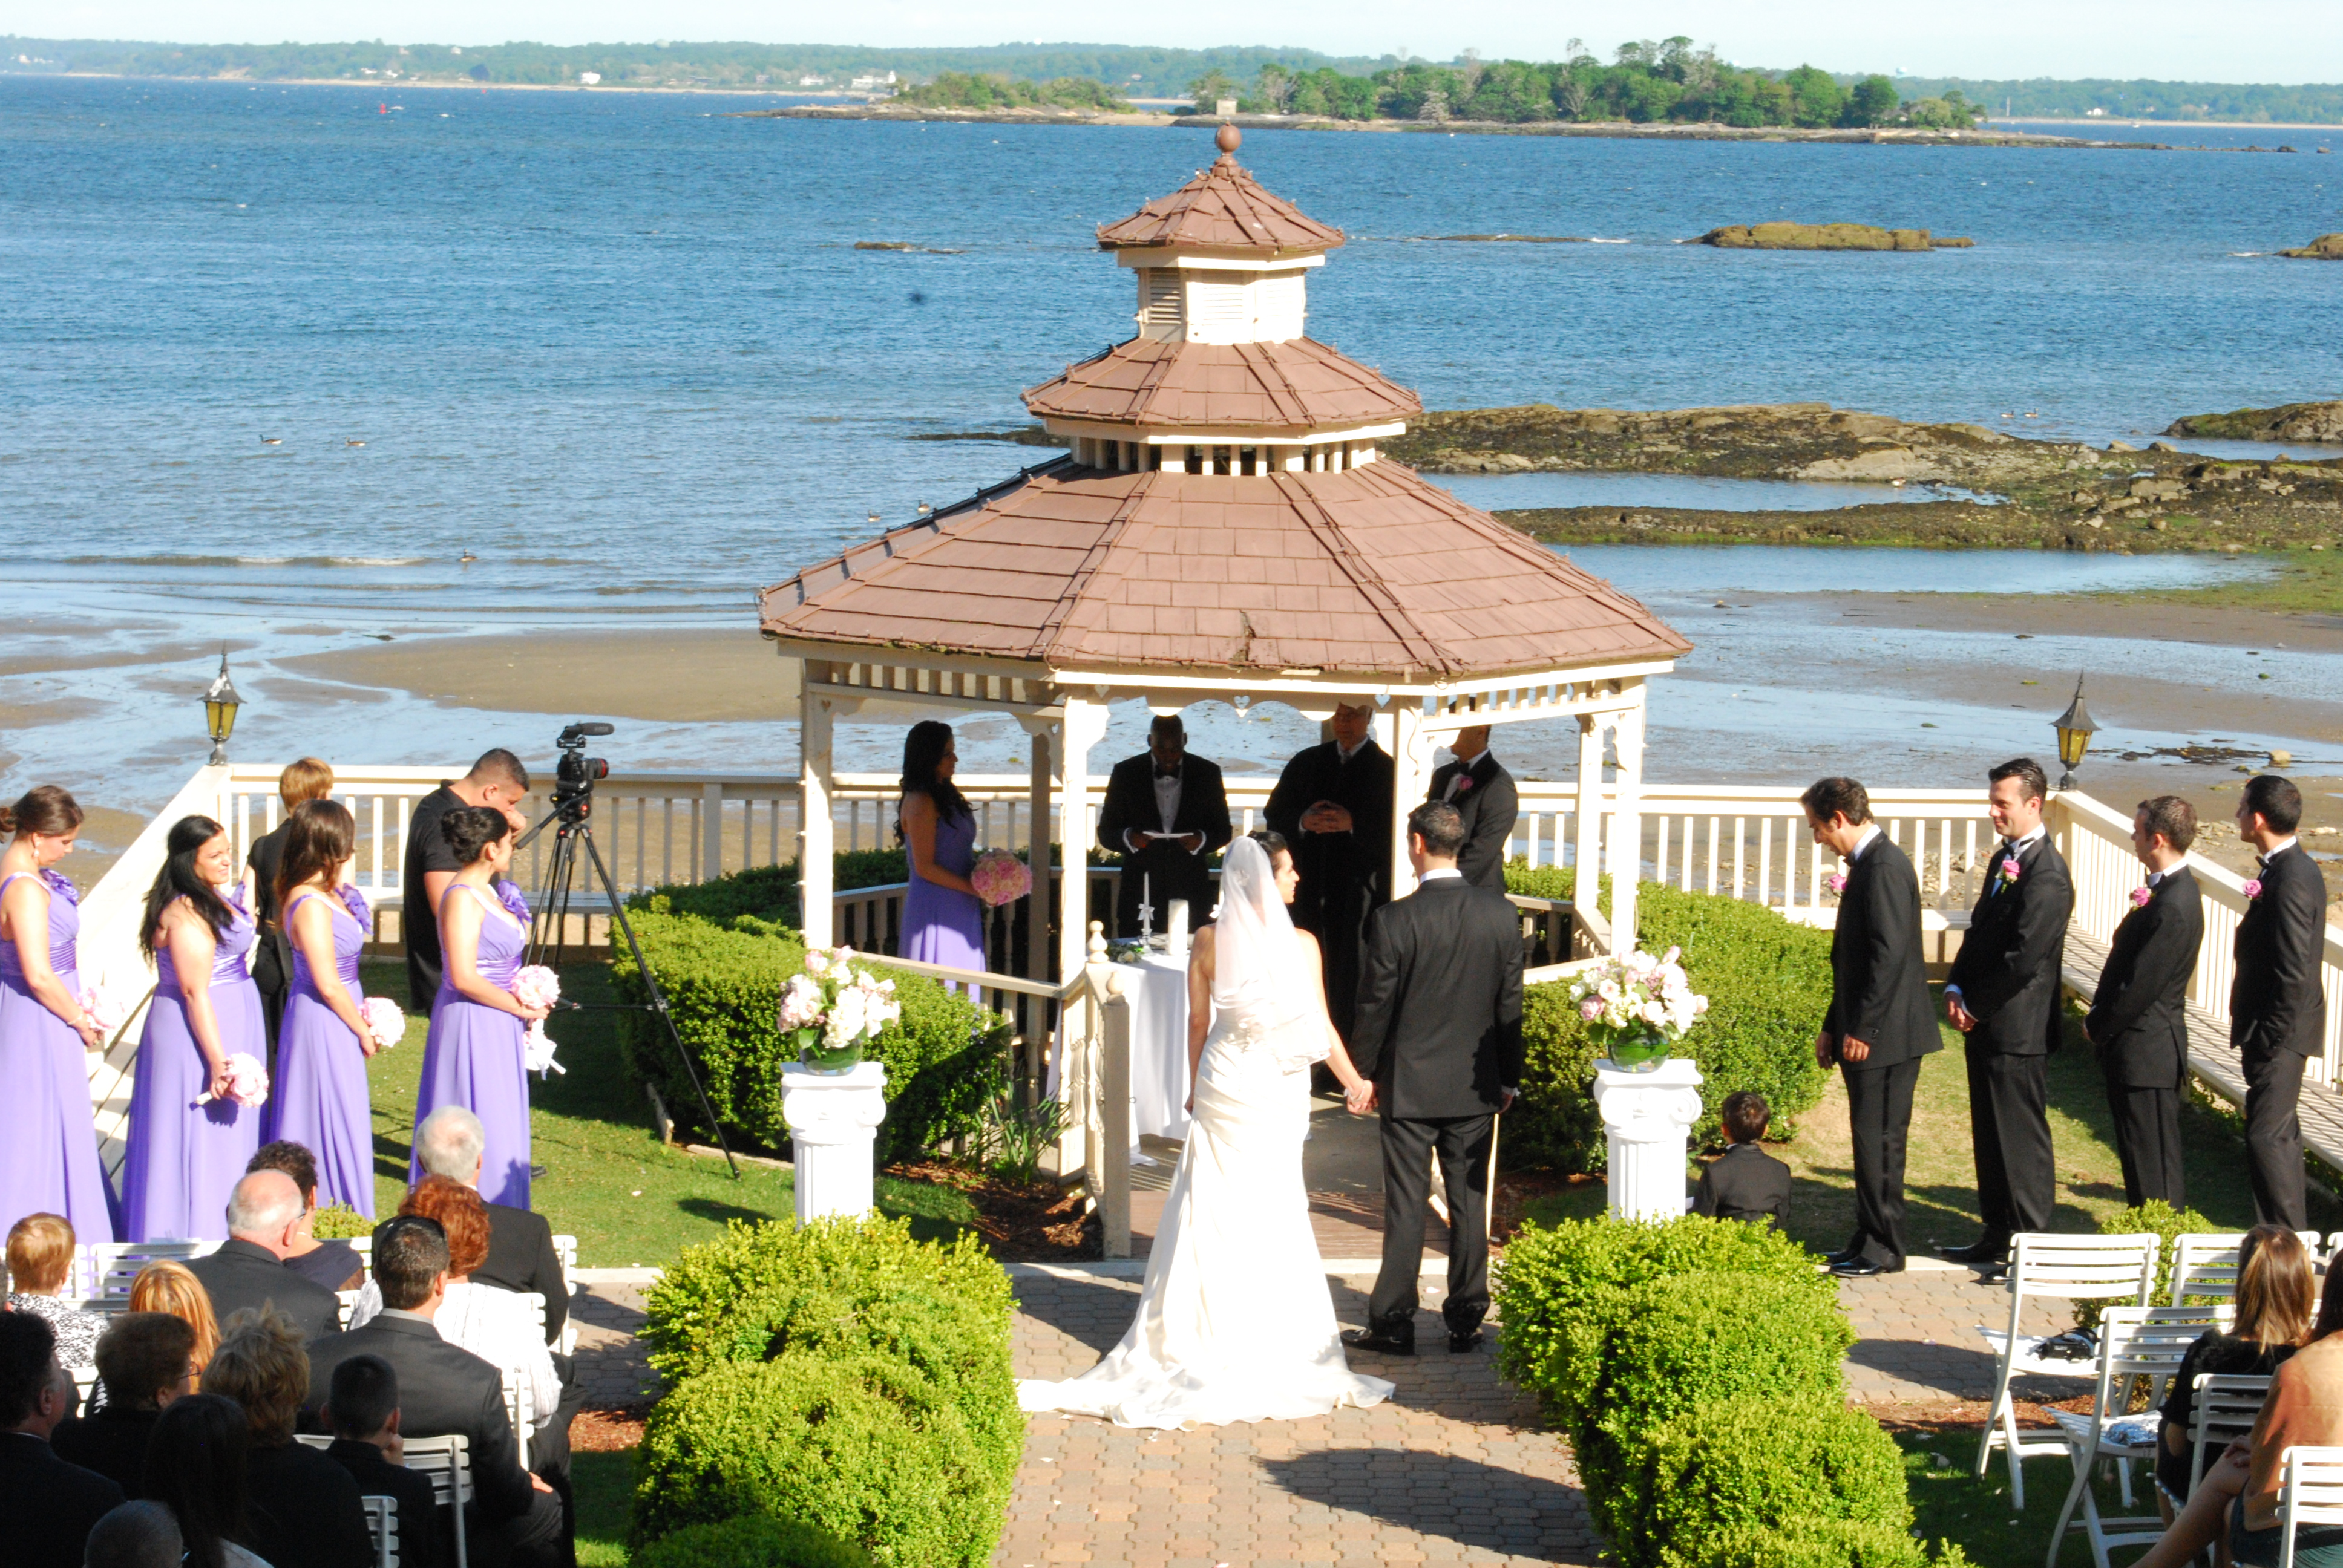 Top nj wedding djs perform at sunset beach wedding in new for Beach weddings in ny